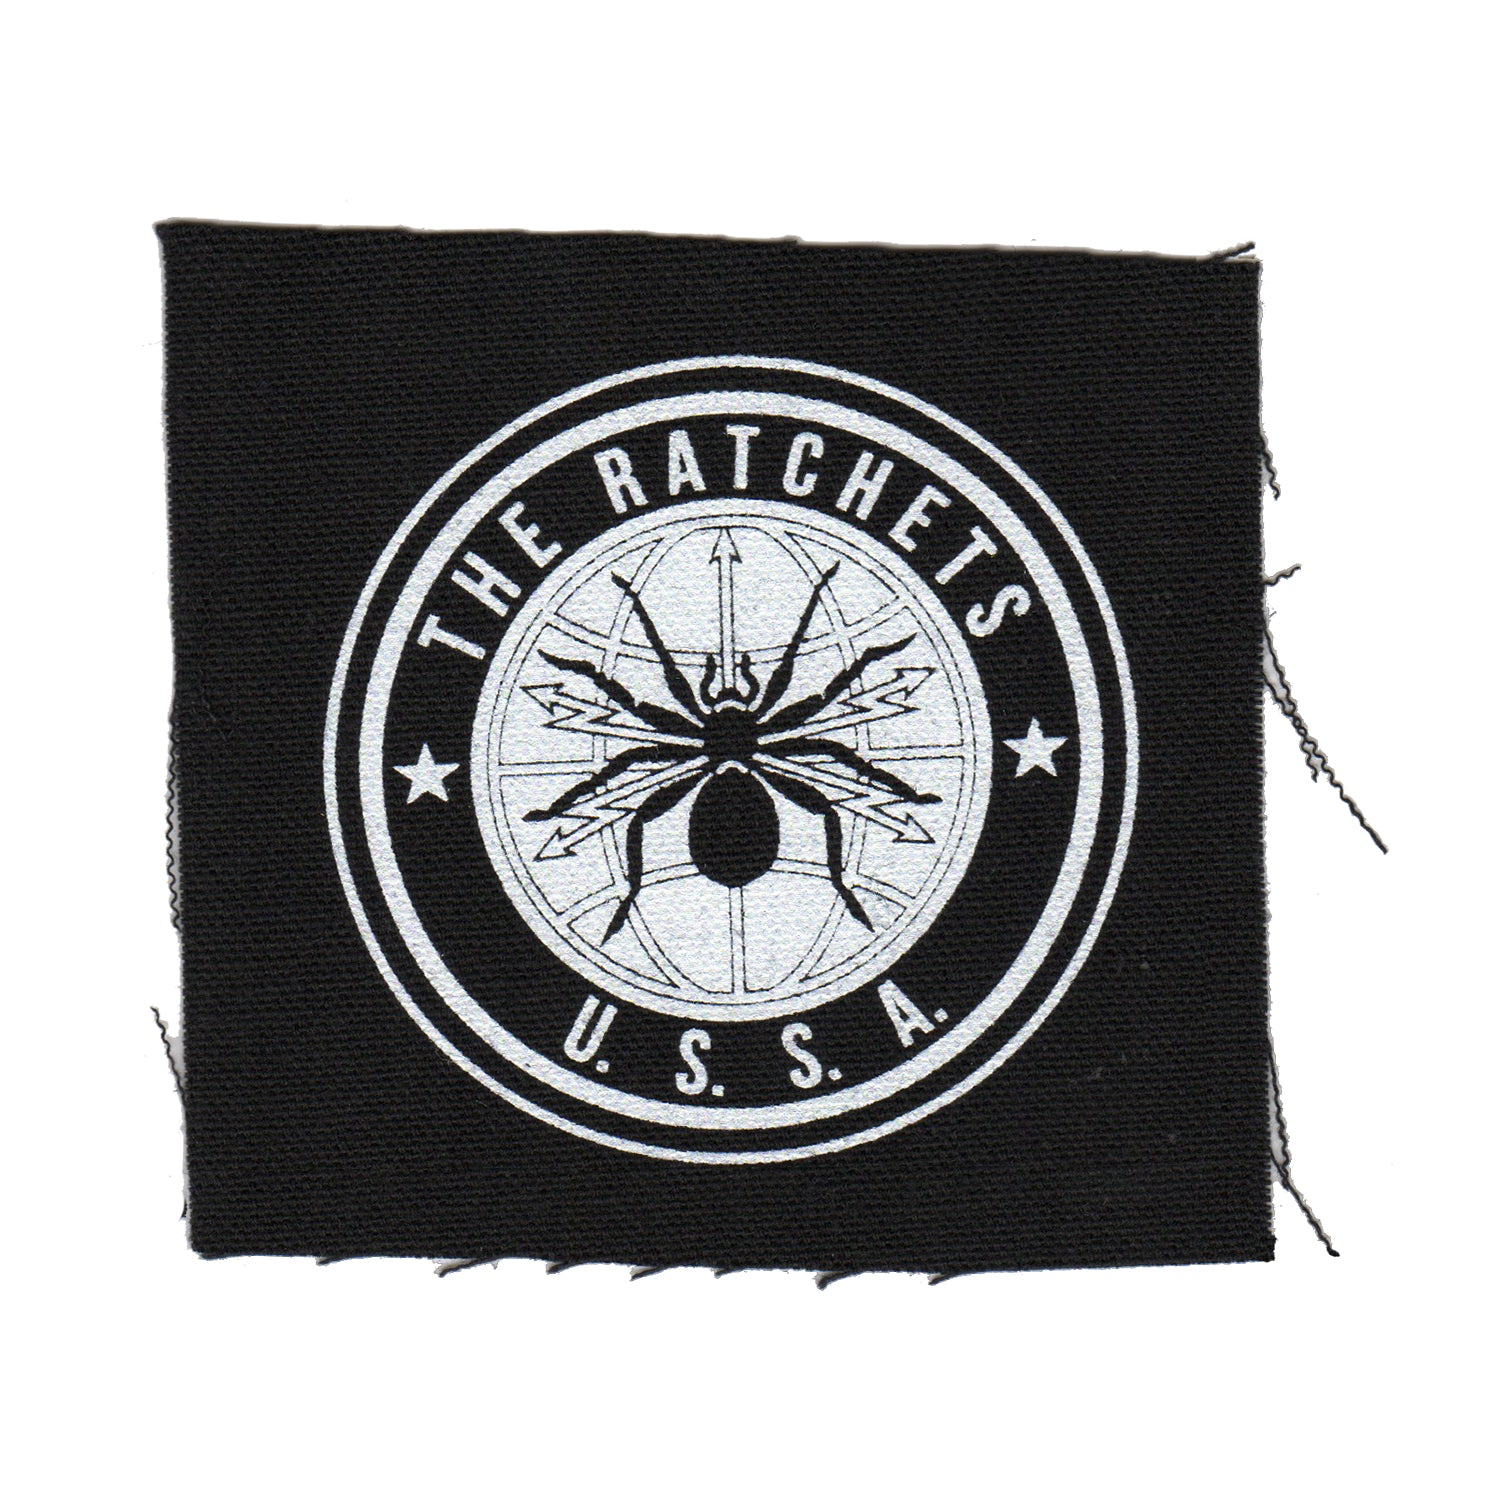 "The Ratchets - Spider - Black - Patch - Cloth - Screenprinted - 4"" x 4"""